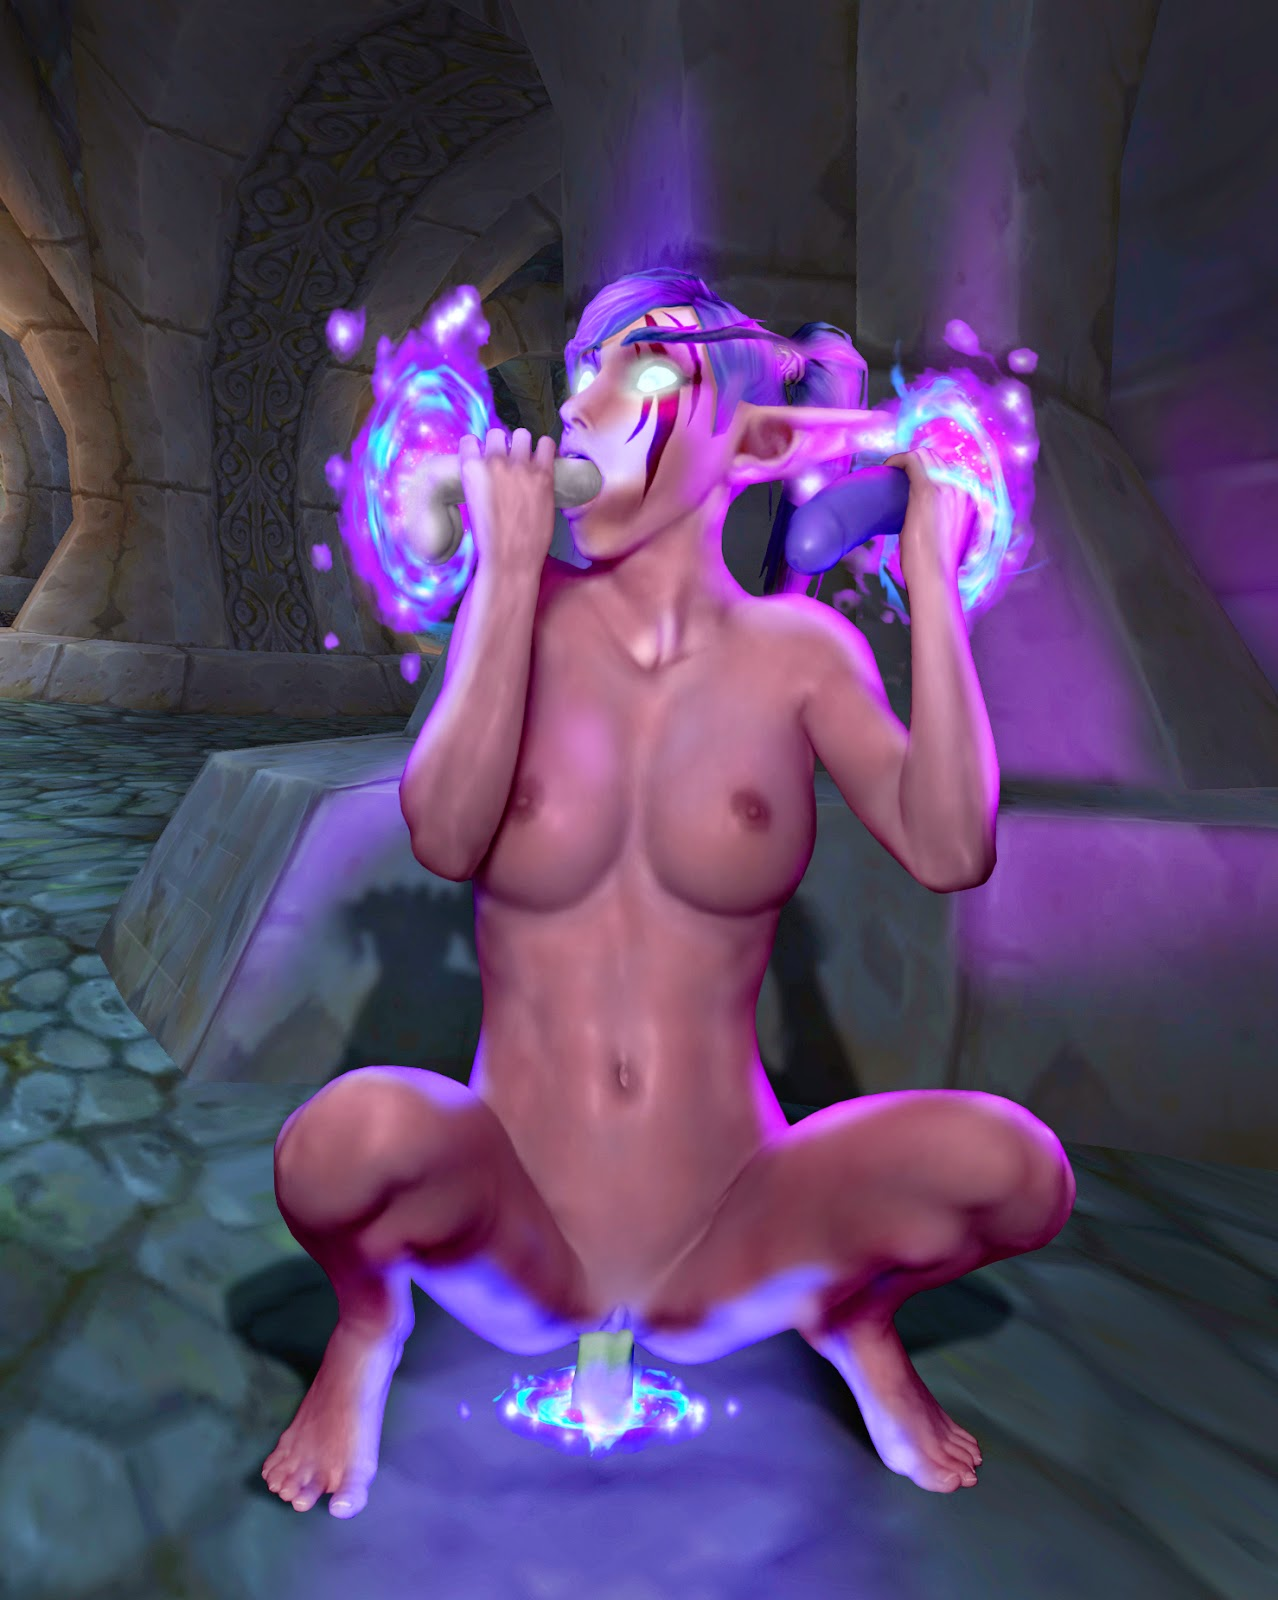 Warcraft 3 nightelf sex nackt vids